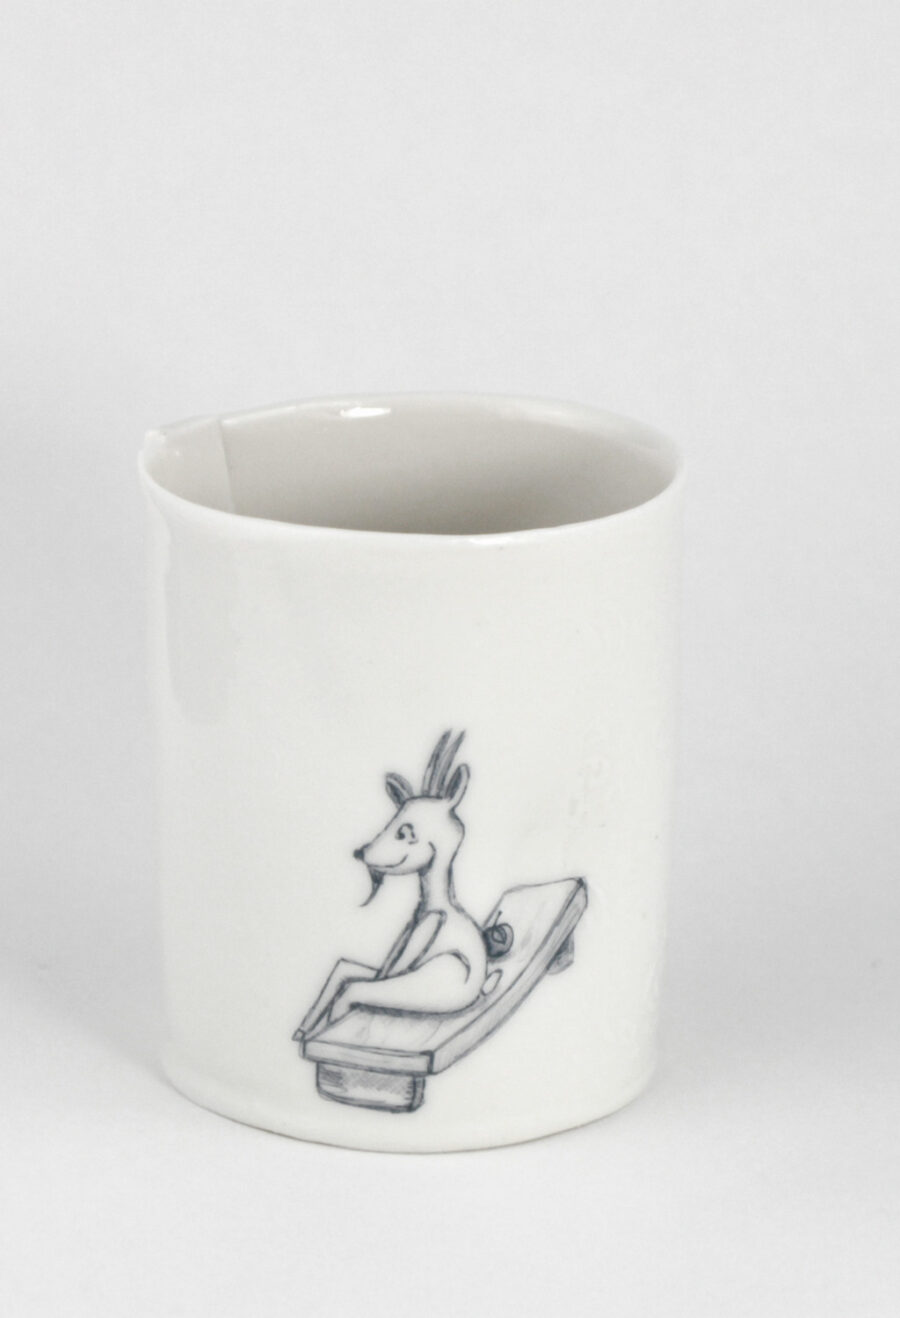 porzellangefäß-mit-niedlicher-ziege-goat-am-viehtheater-my_deer-illustrated-ceramics